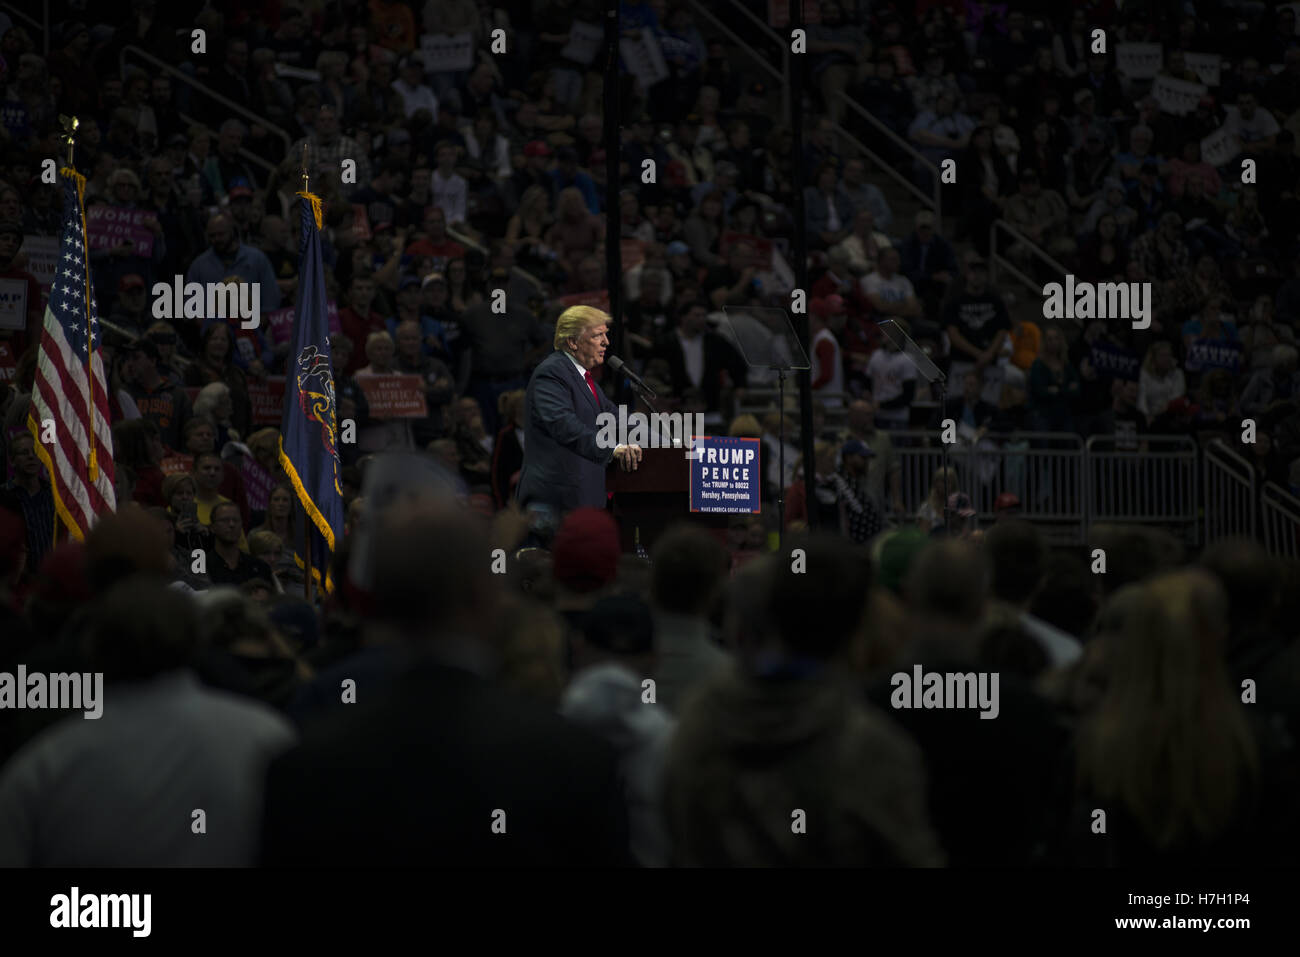 Hershey, Pennsylvania, USA. 5th Nov, 2016. Donald Trump speaks to over 10,000 supporters in Hersey, Pennsylvania - Stock Image